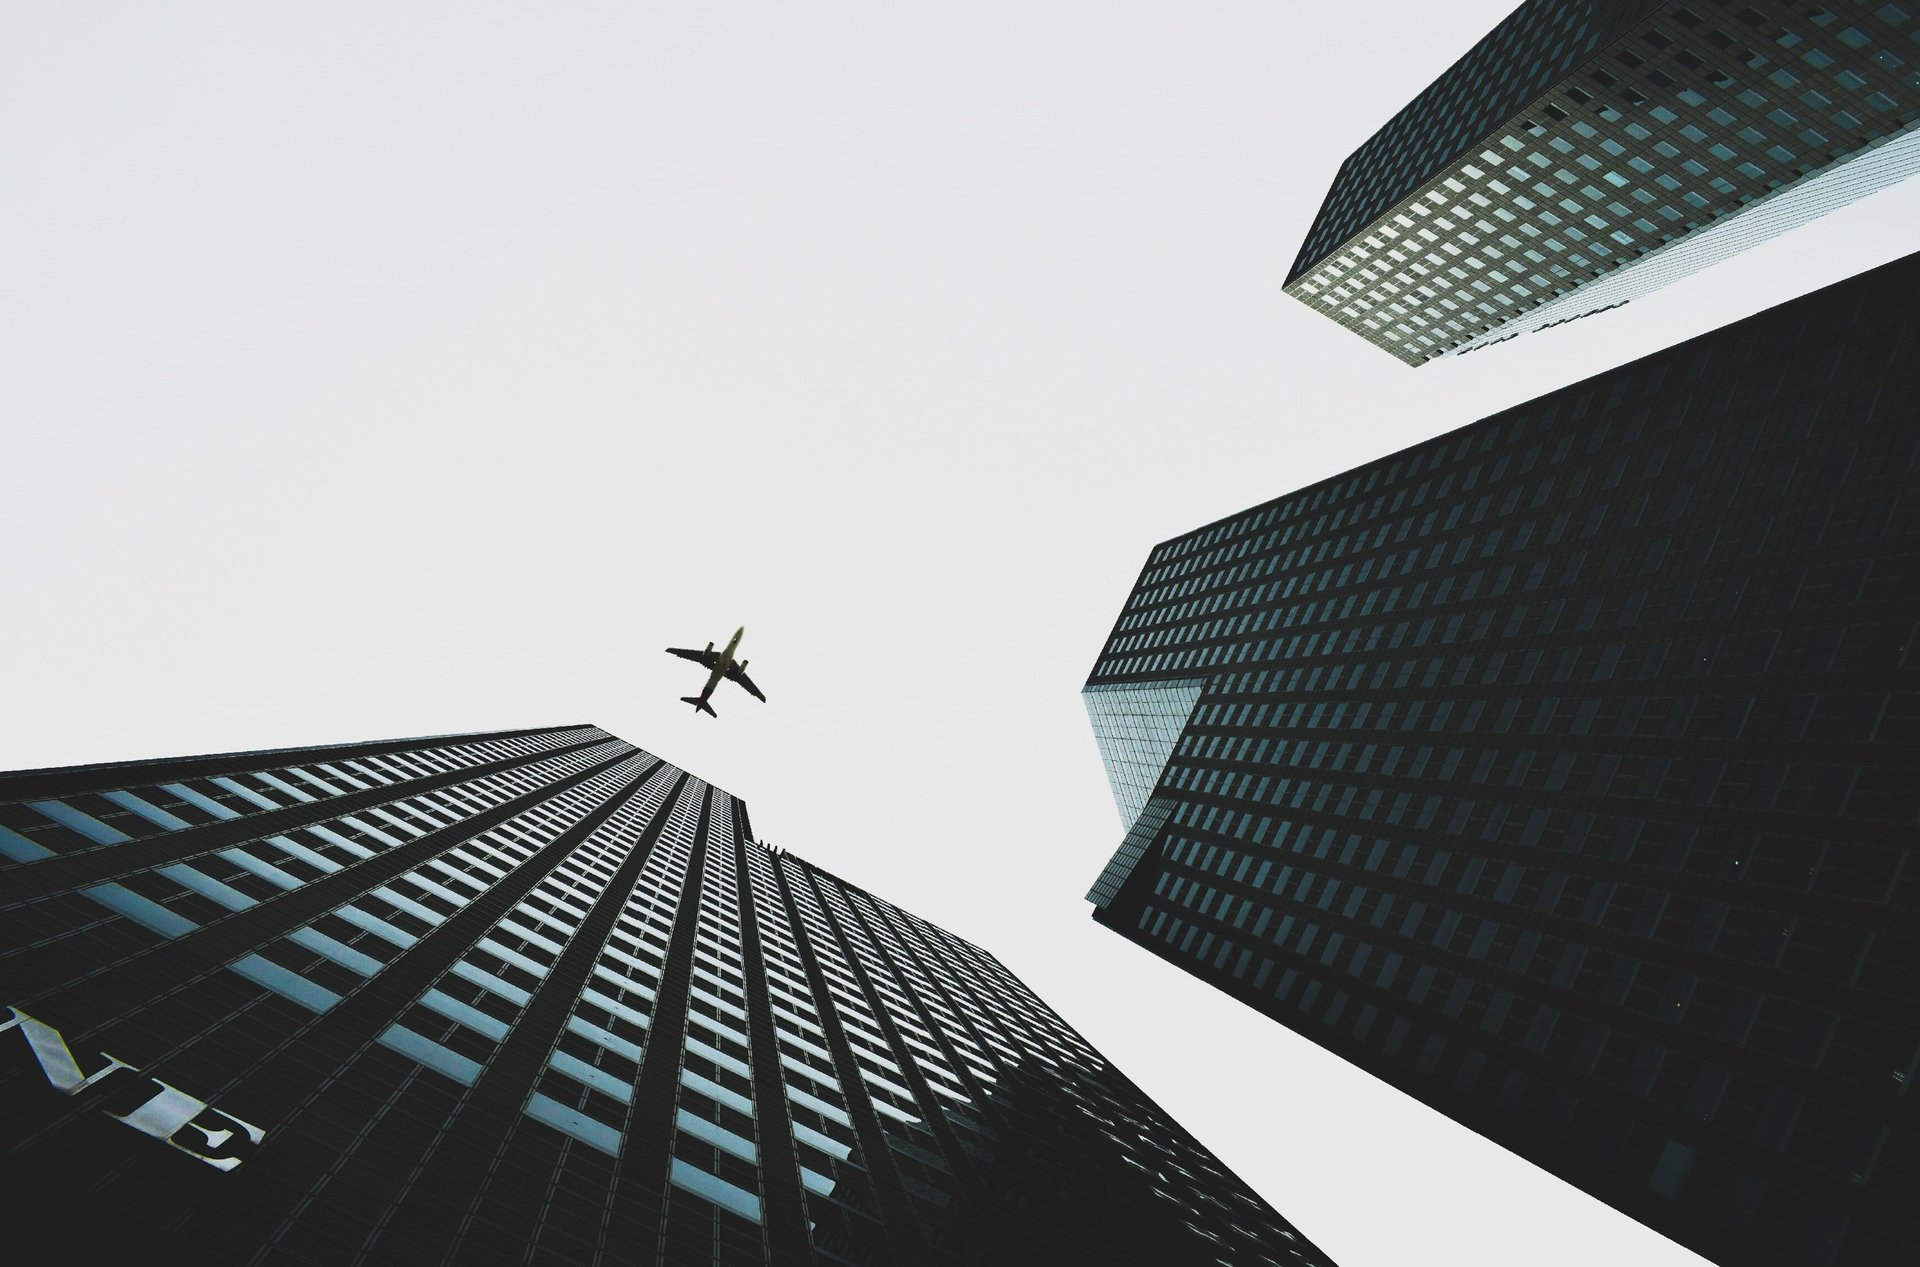 Airplane Flying Over City